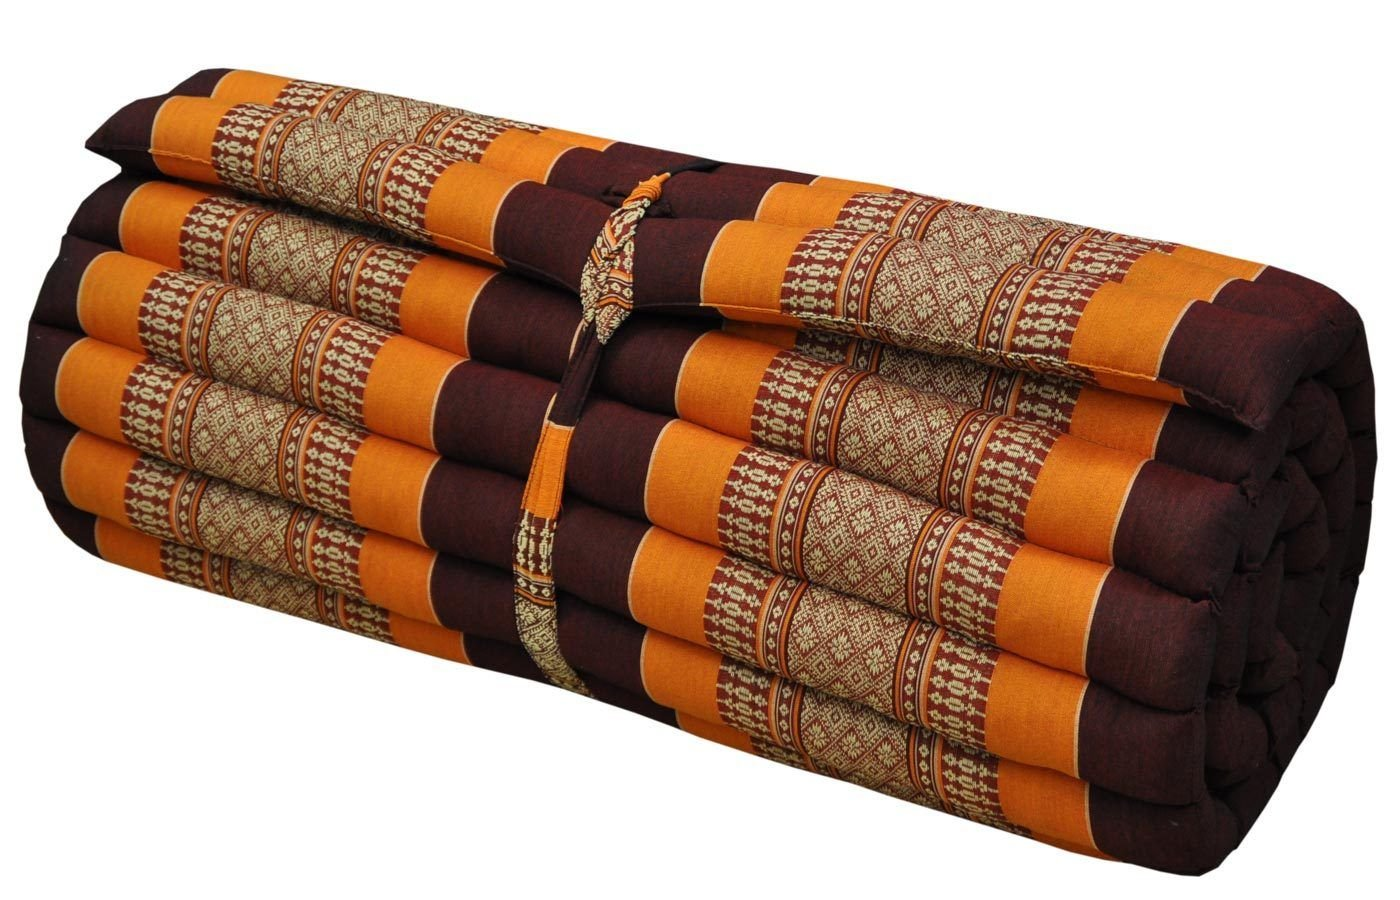 Noinoi@roll up Thai Mattress Kapok (Large, Orange-Brown) by NOINOI